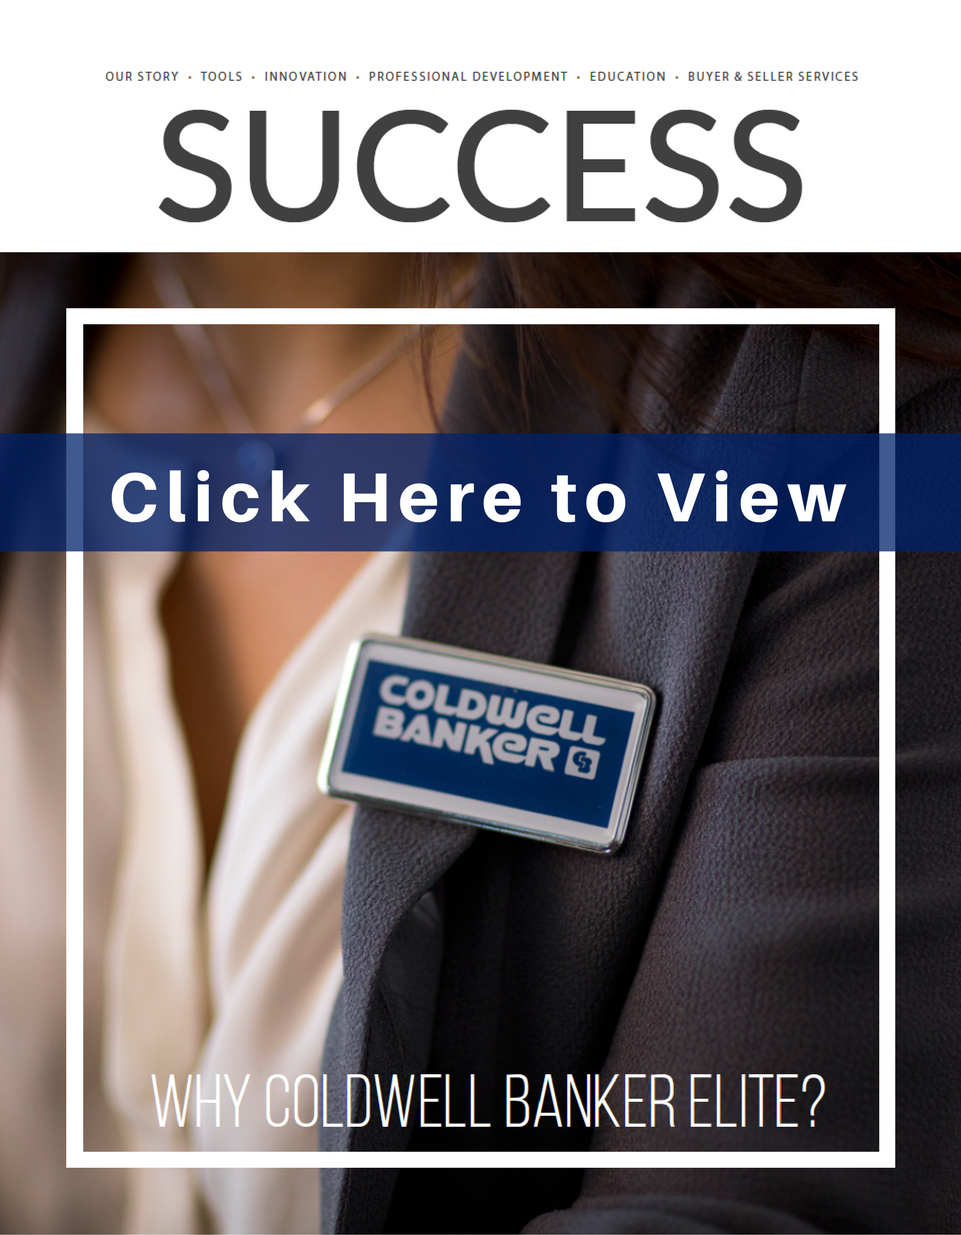 Coldwell Banker Elite Success guide fredericksburg, VA